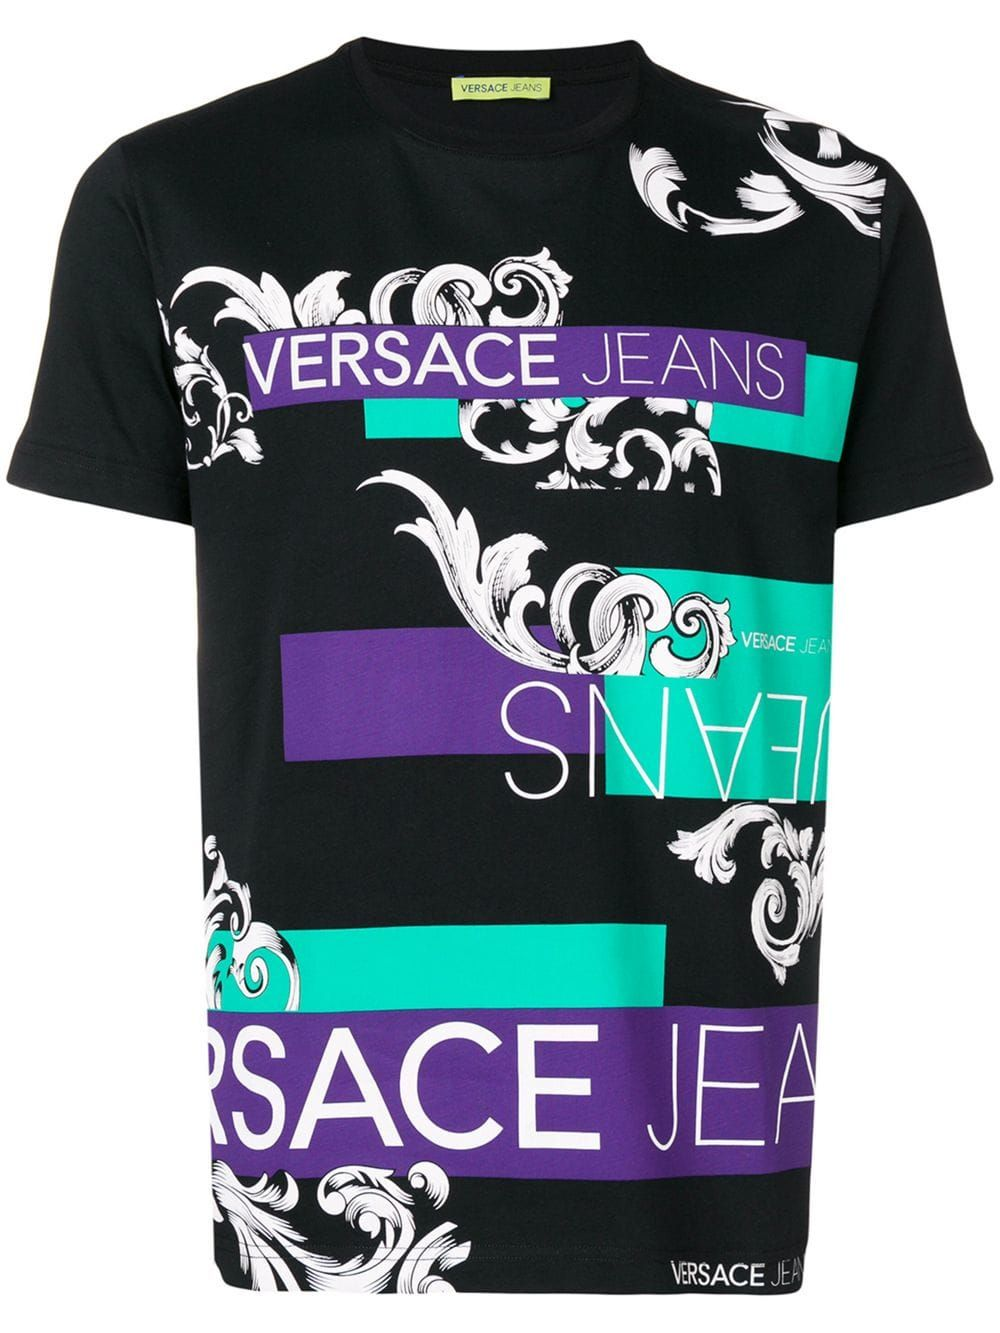 Versace Jeans Foil Tiger Print T Shirt 170 Liked On Polyvore Featuring Men S Fashion Men S Clothing Mens Printed Shirts Versace Mens Shirt Mens Tshirts